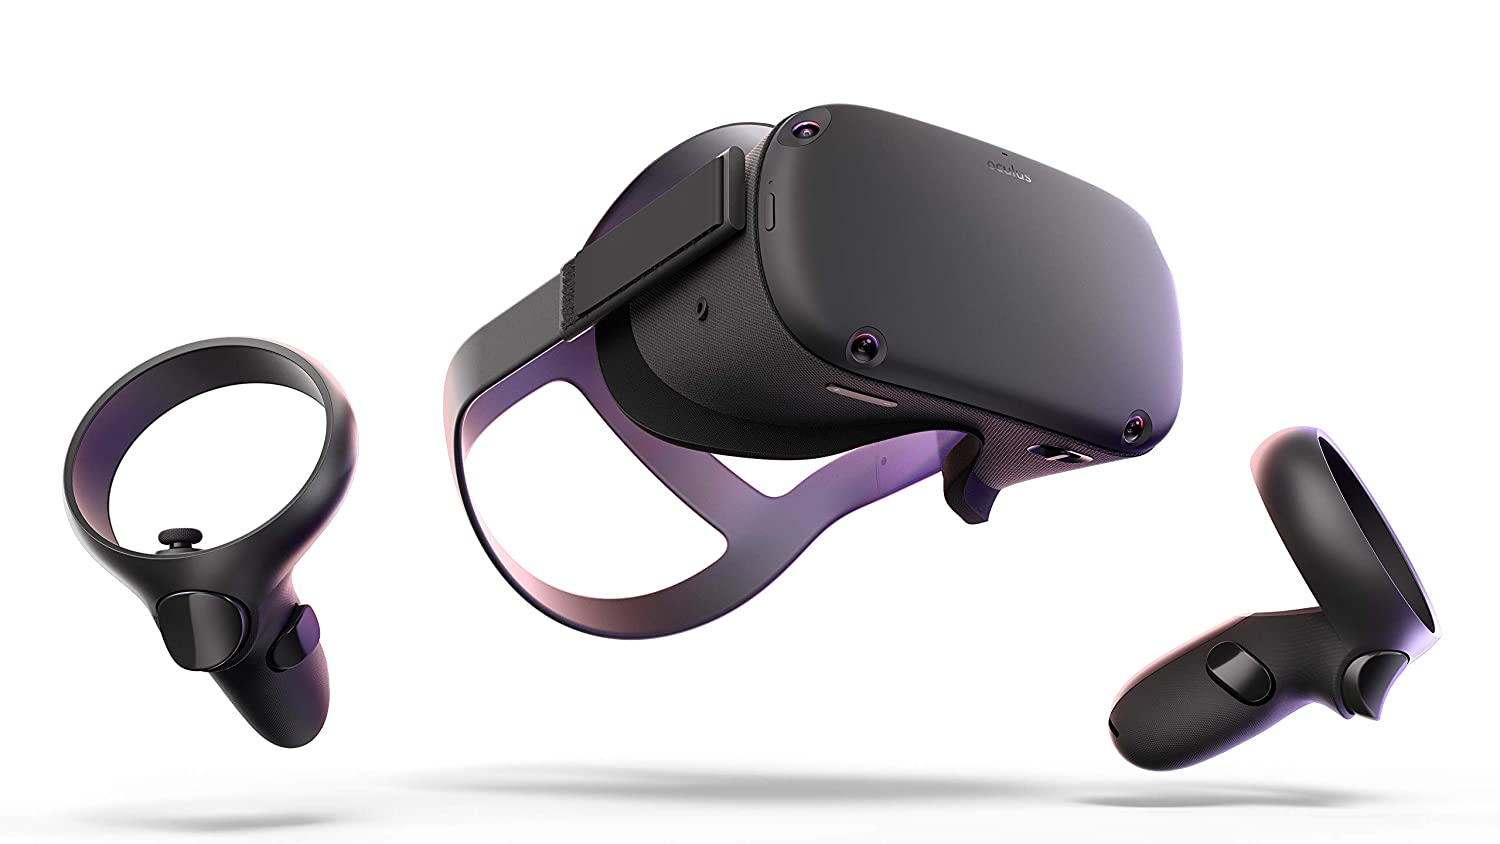 Oculus Quest San Francisco Mall All-in-one VR – Headset Albuquerque Mall 128GB Gaming